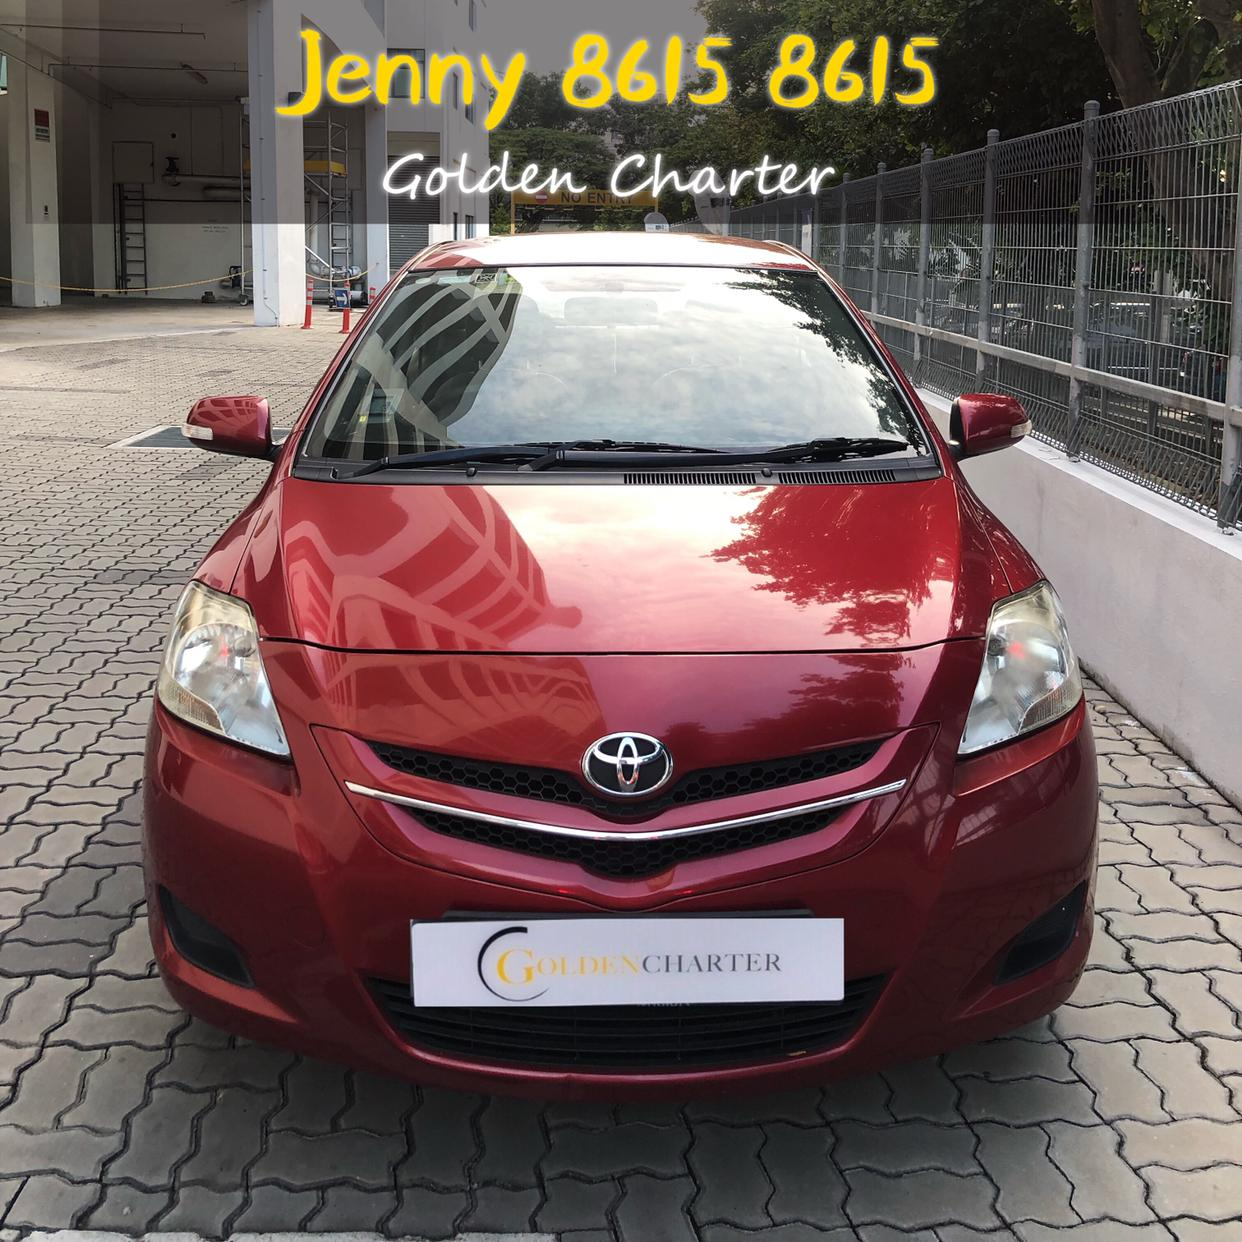 Toyota Vios RENTING OUT THE CHEAPEST VEHICLE FOR Grab/Ryde/Personal USAGEJ